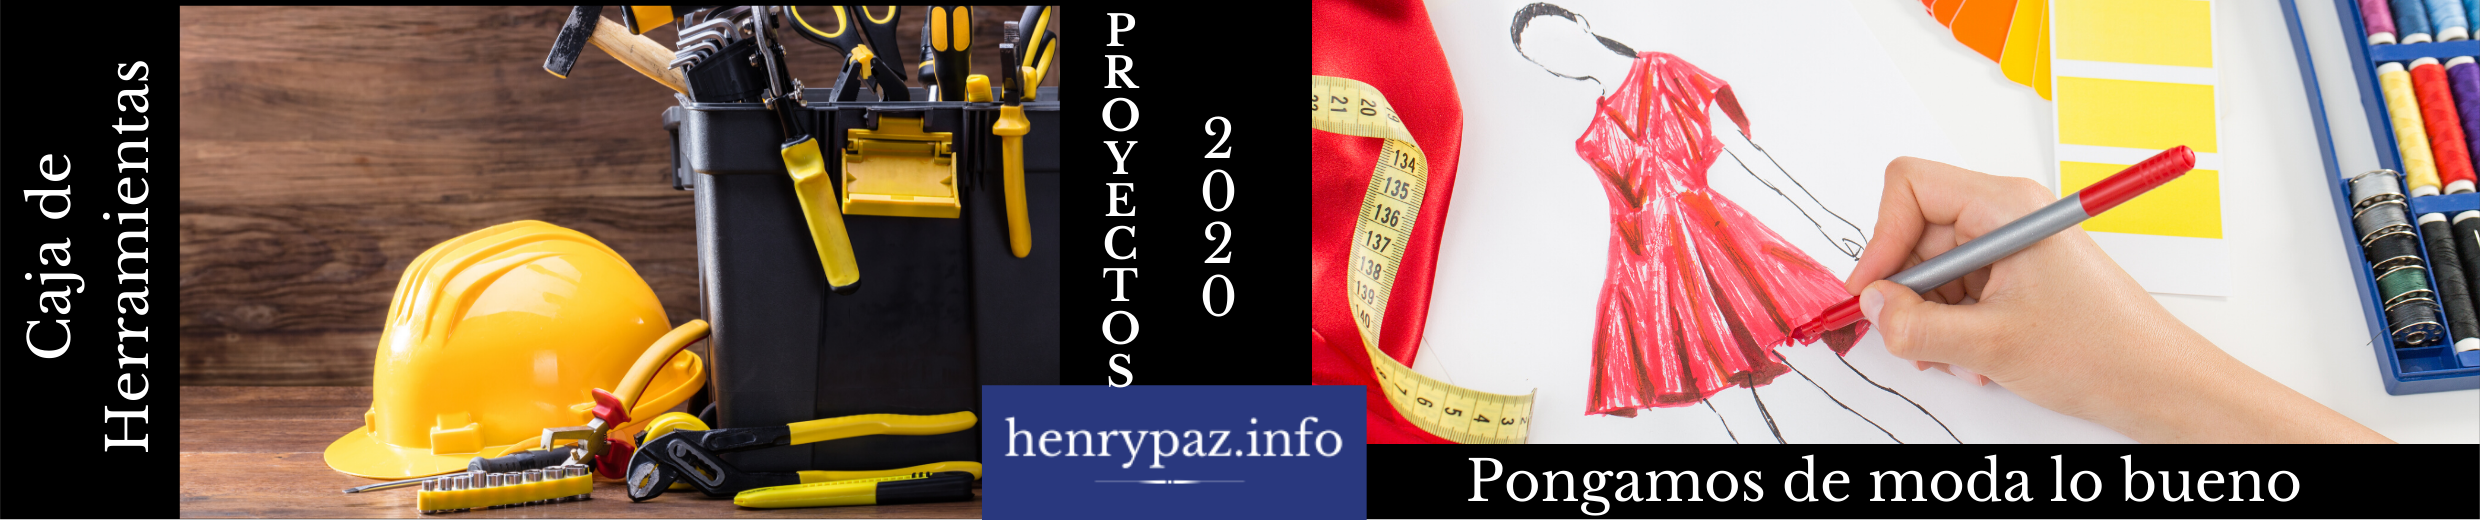 Copy of Proyectos 2020 henrypaz.info